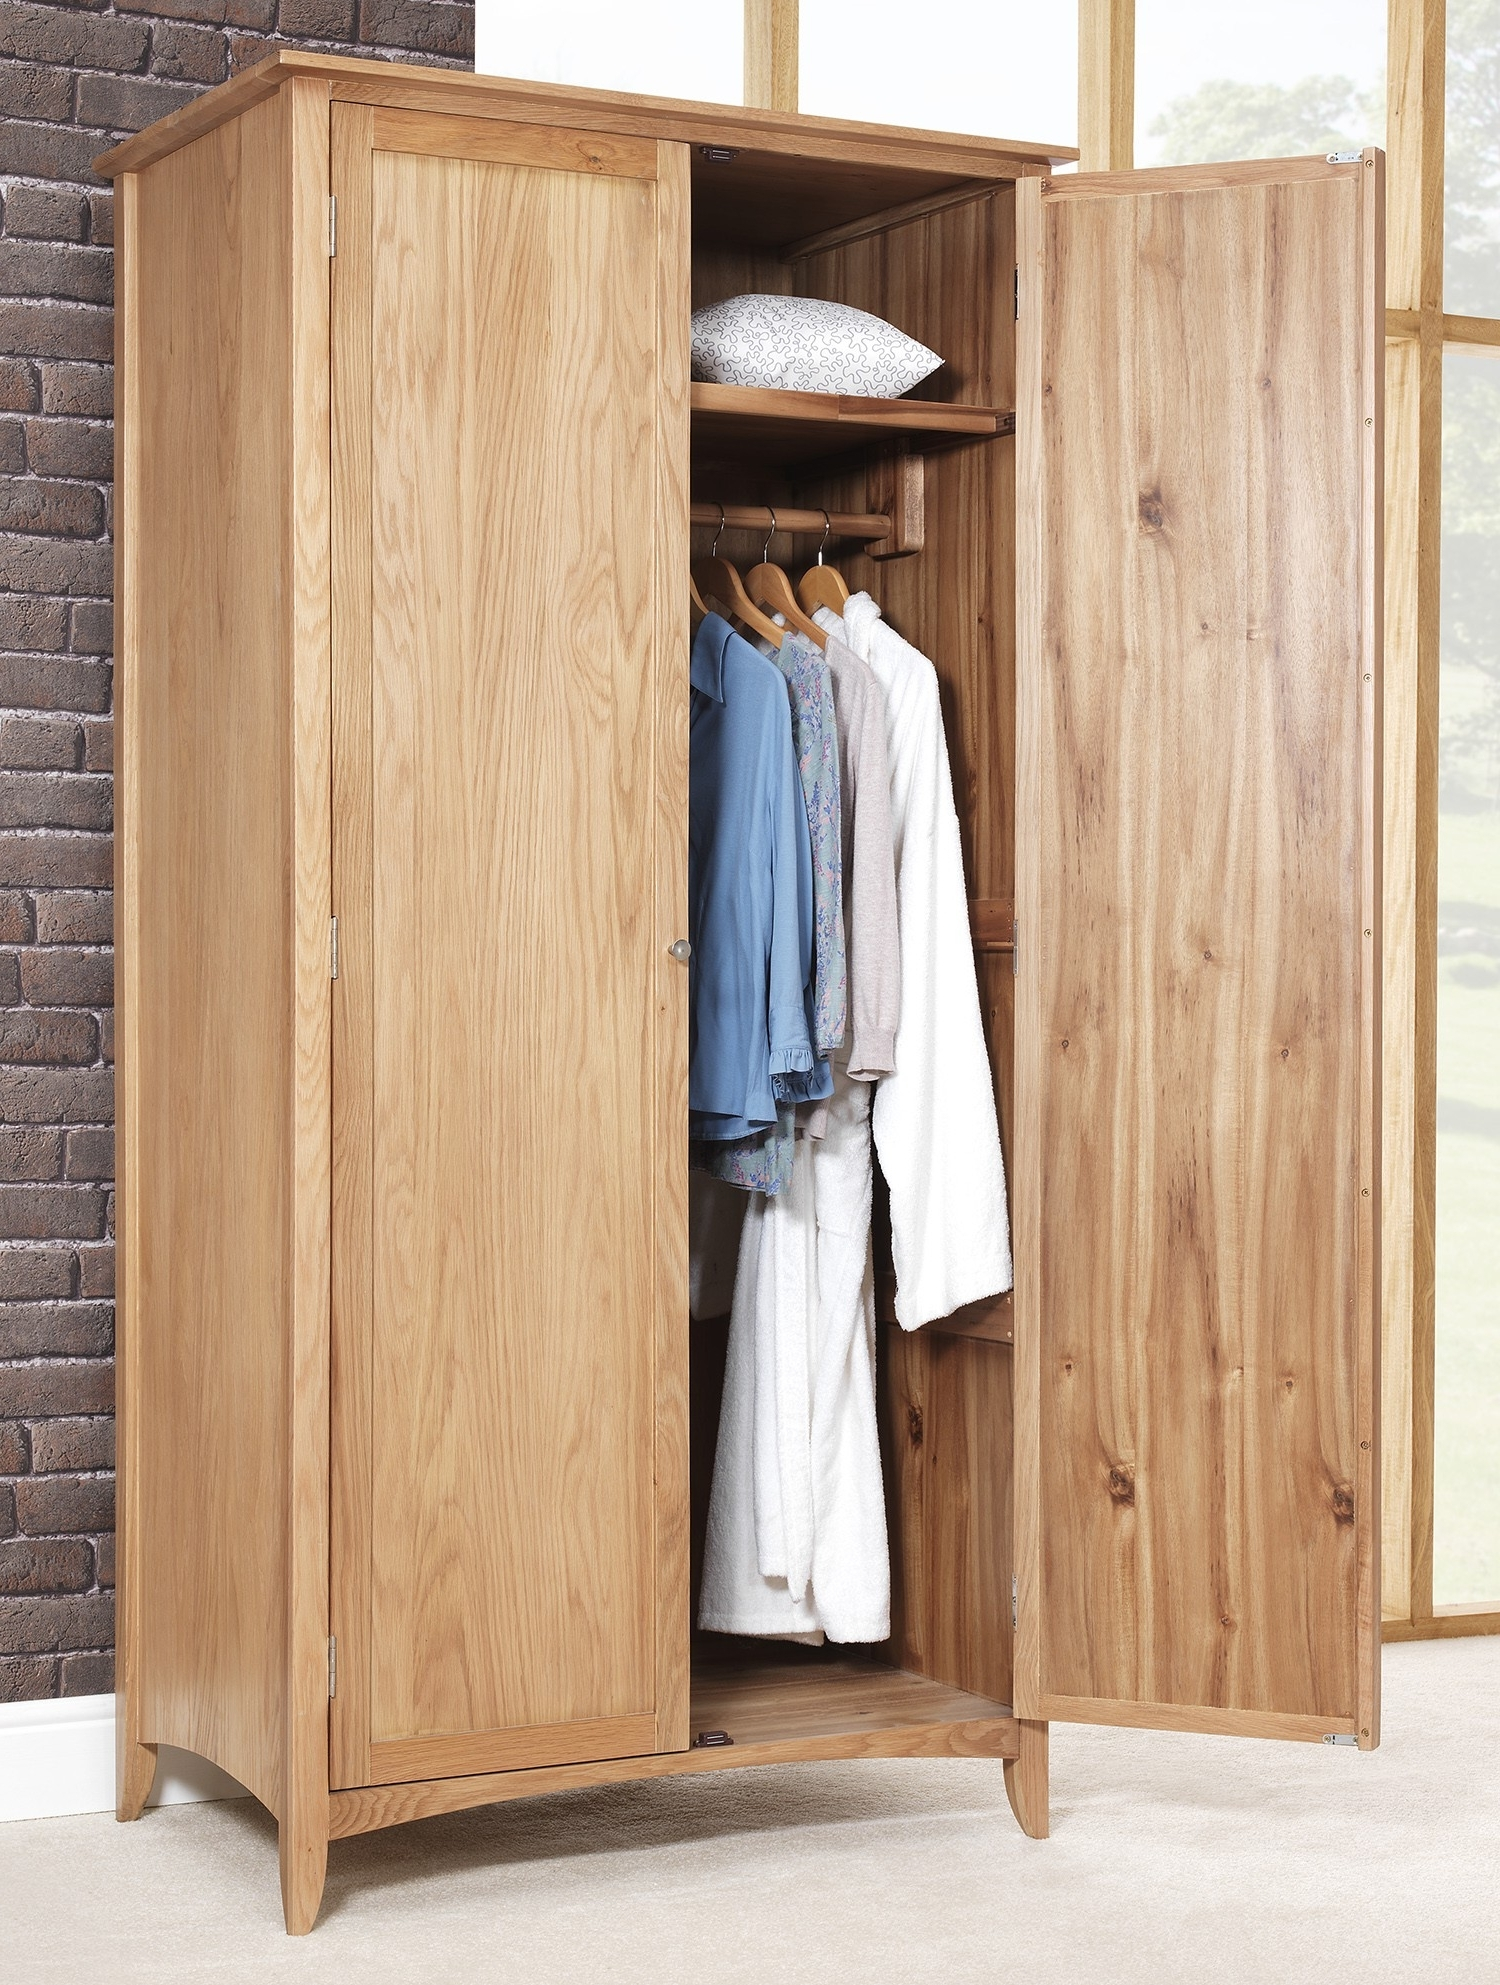 Large Double Rail Wardrobes Within Favorite Edward Hopper Oak Double Wardrobe (View 6 of 15)